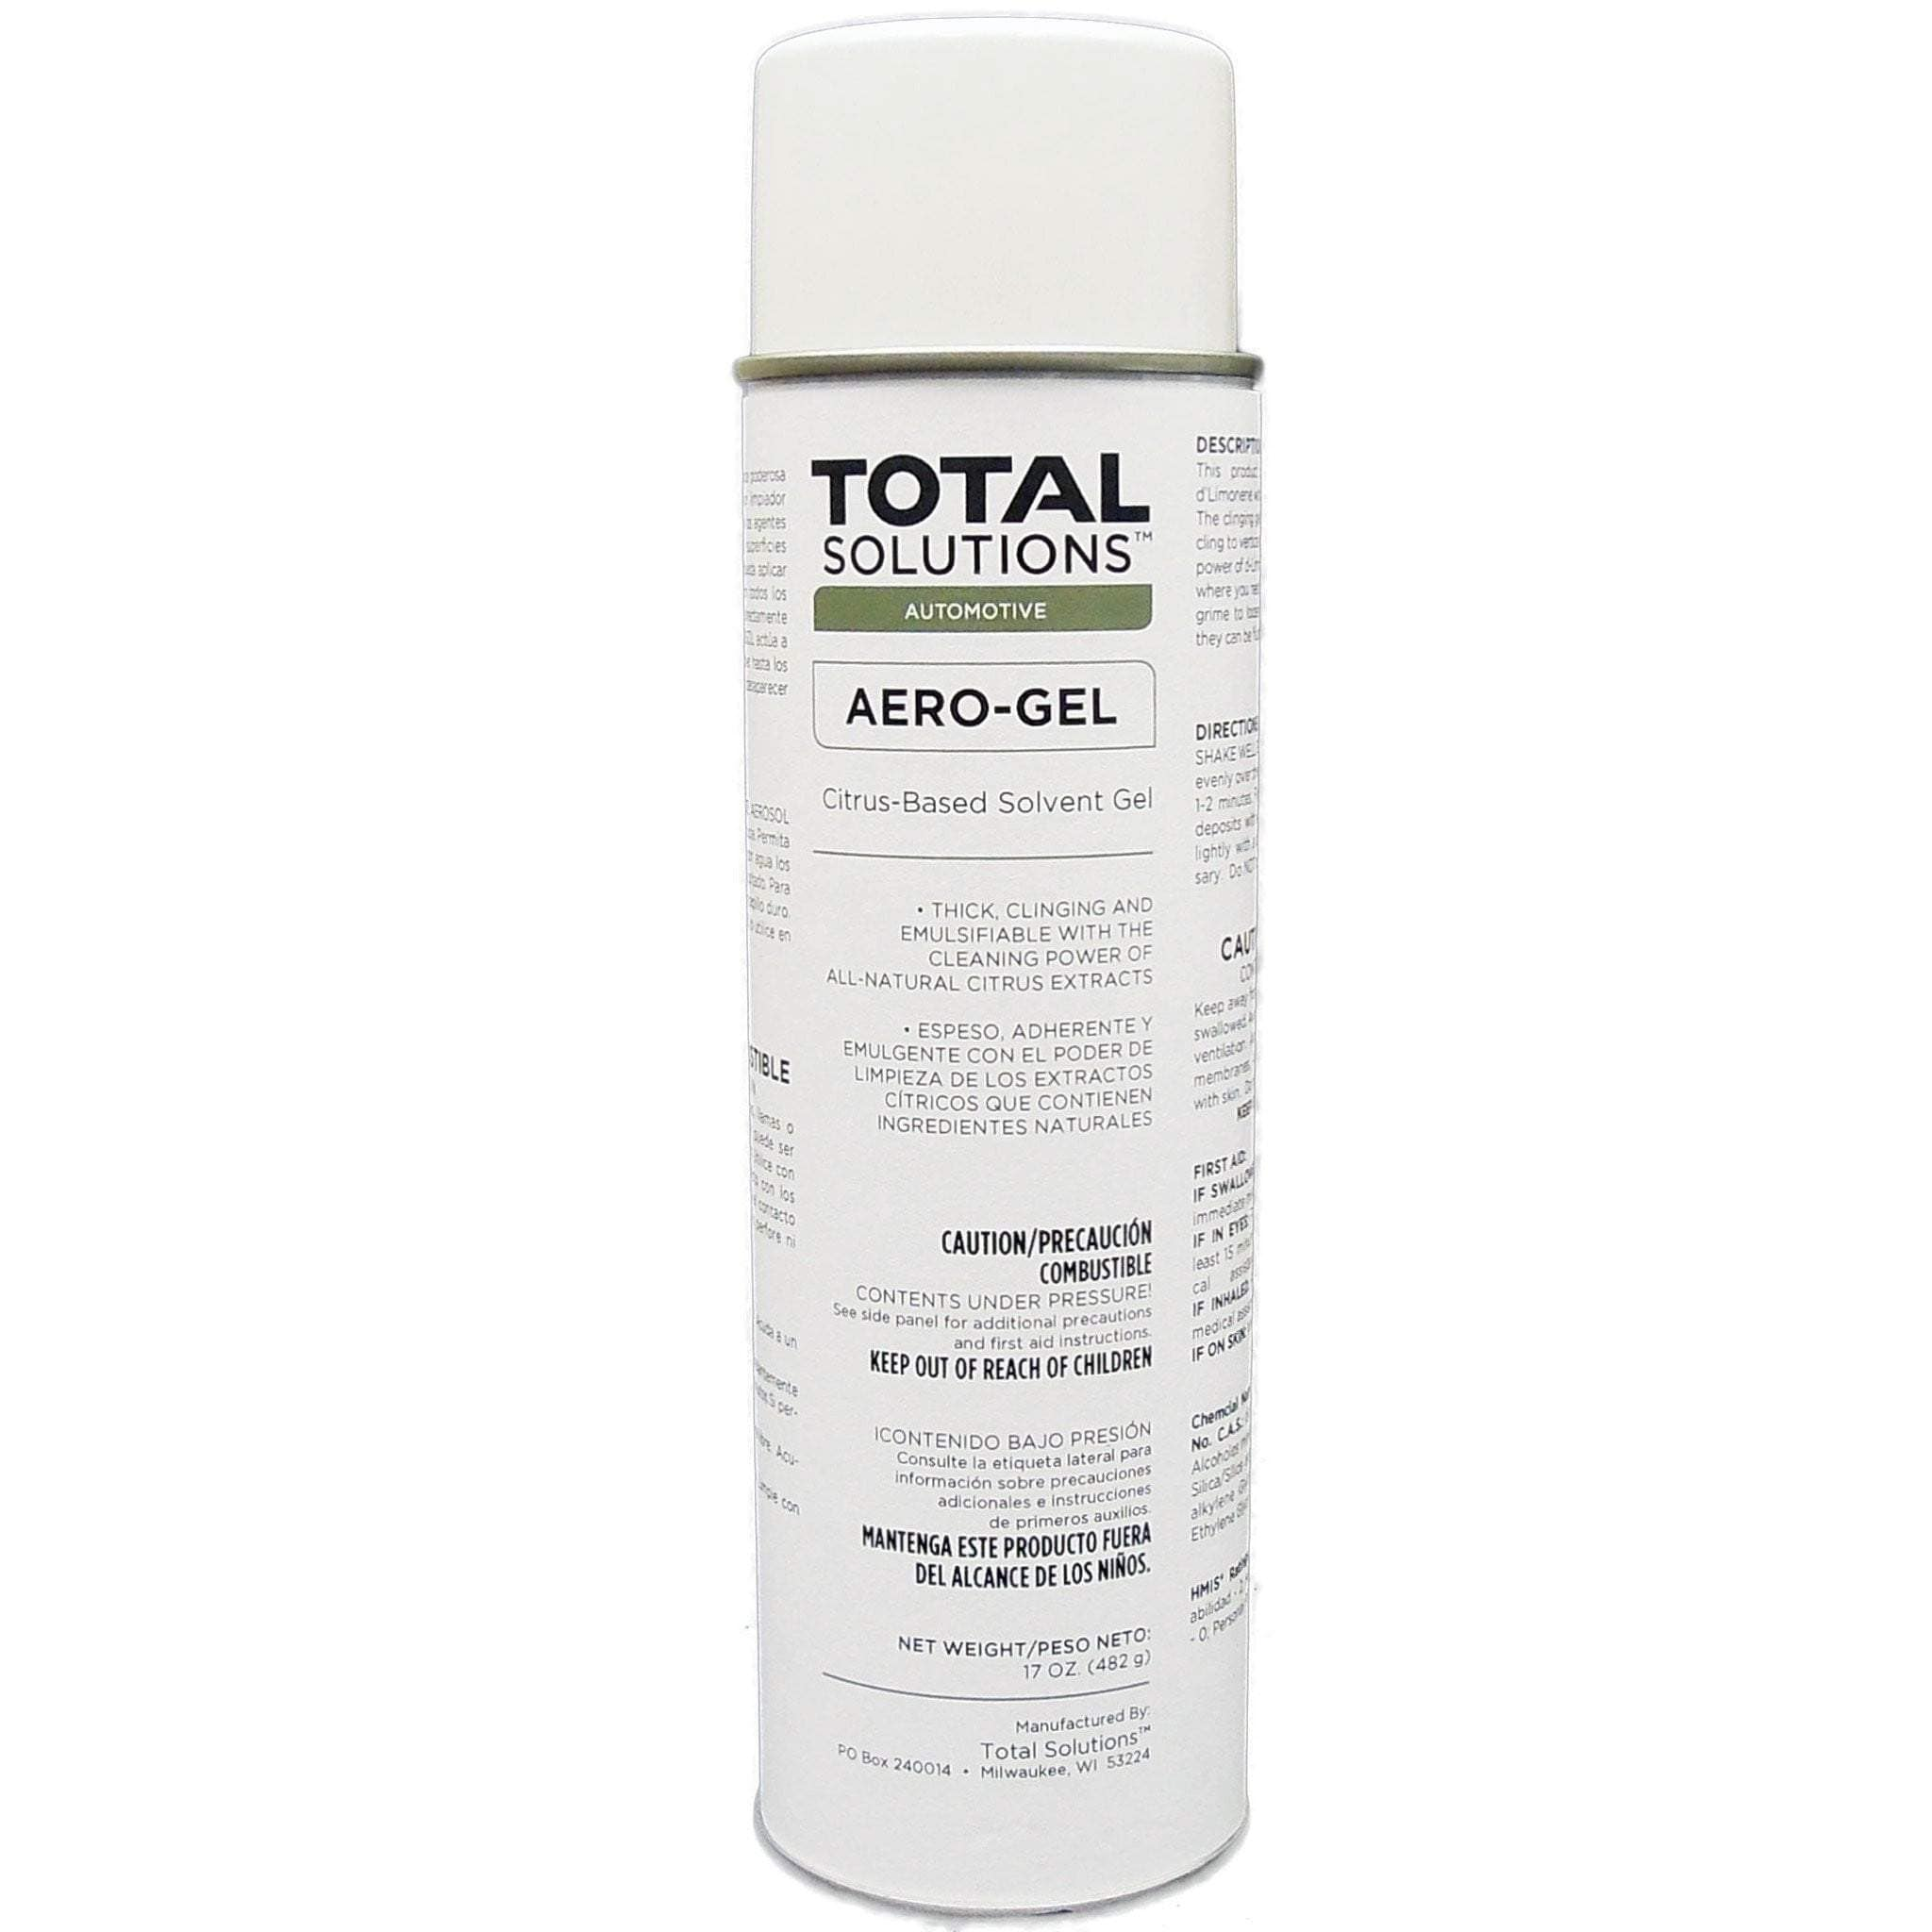 Aero-Gel - Aerosol with 70% D- Limonene, an emulsifiable aerosol degreasing gel- 12 Can Case